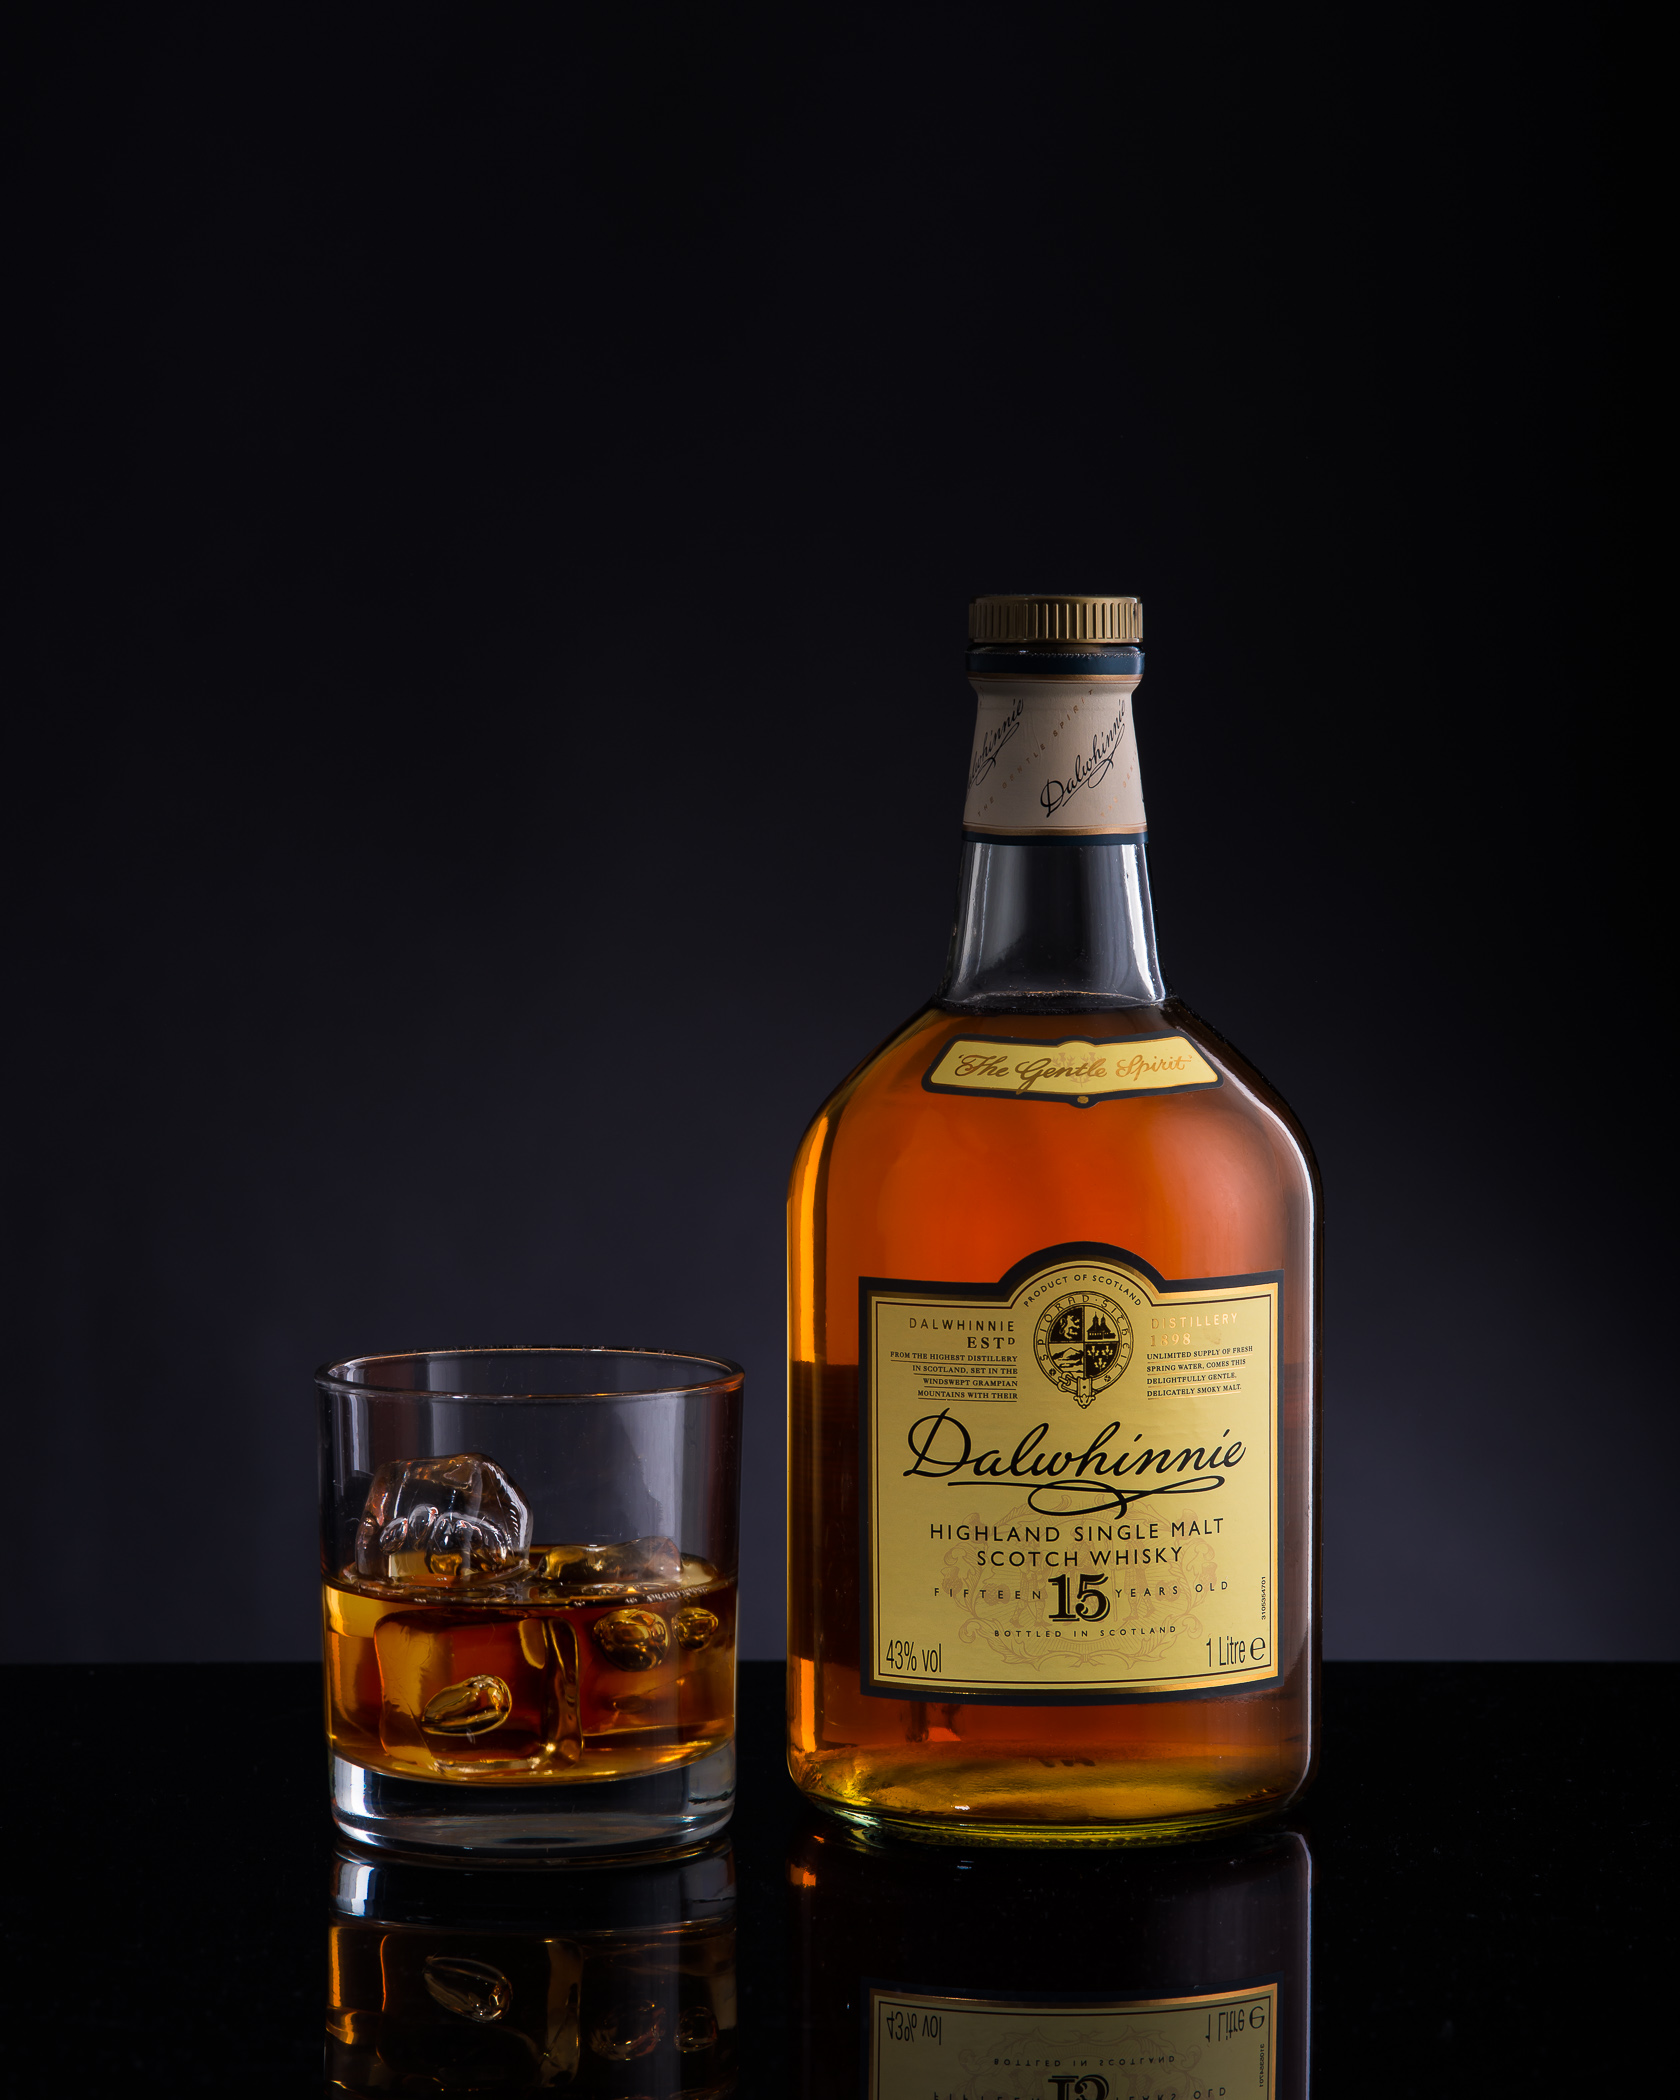 Whisky glass and bottle food and product photography